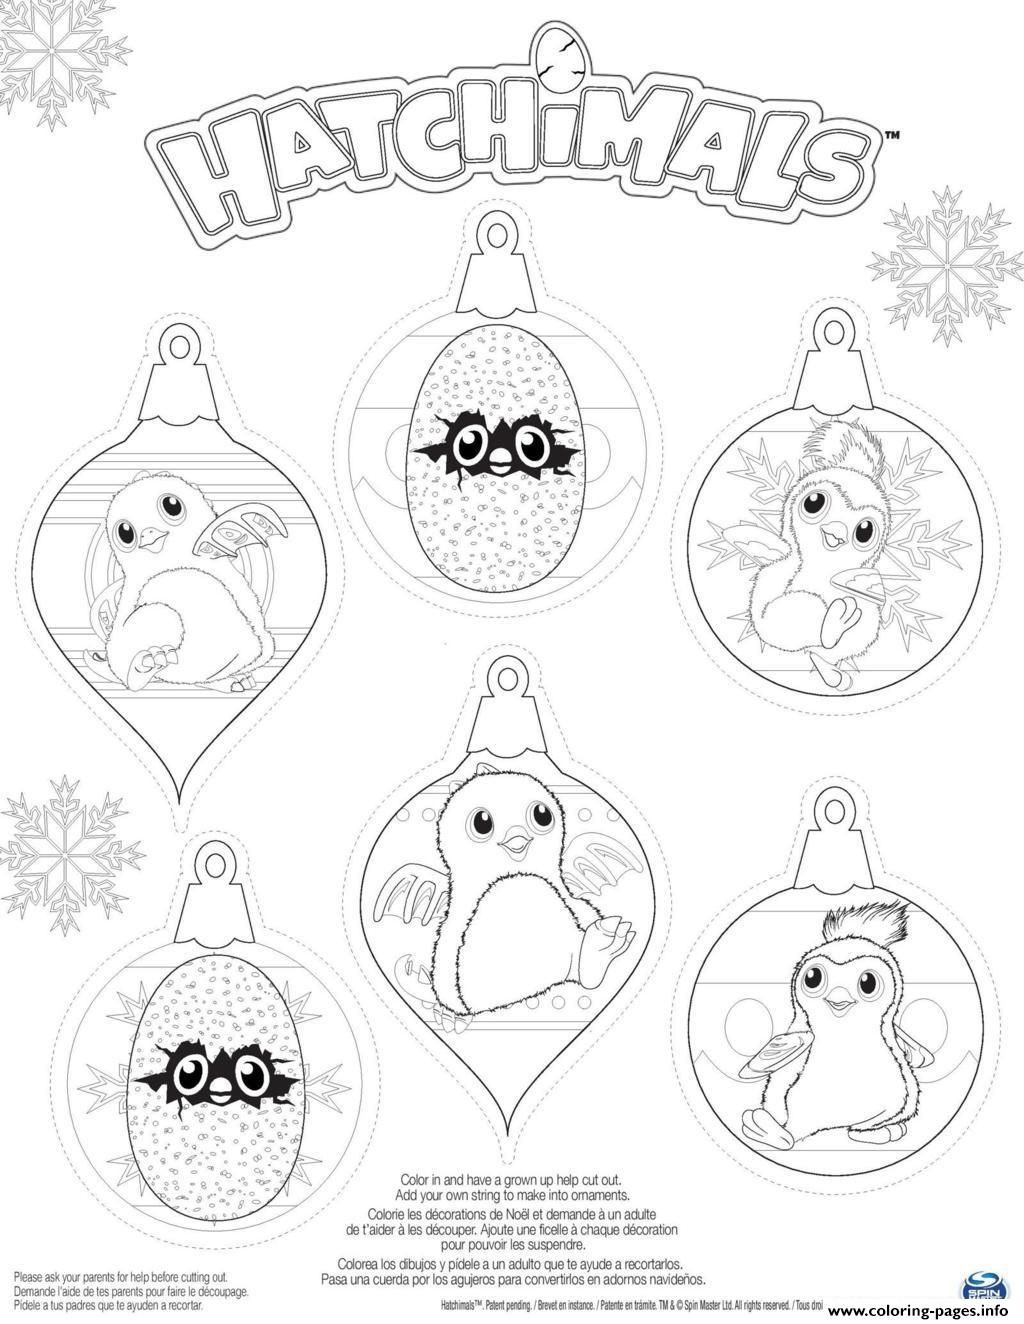 Print Hatchy hatchimals penguala draggles coloring pages | Parties ...